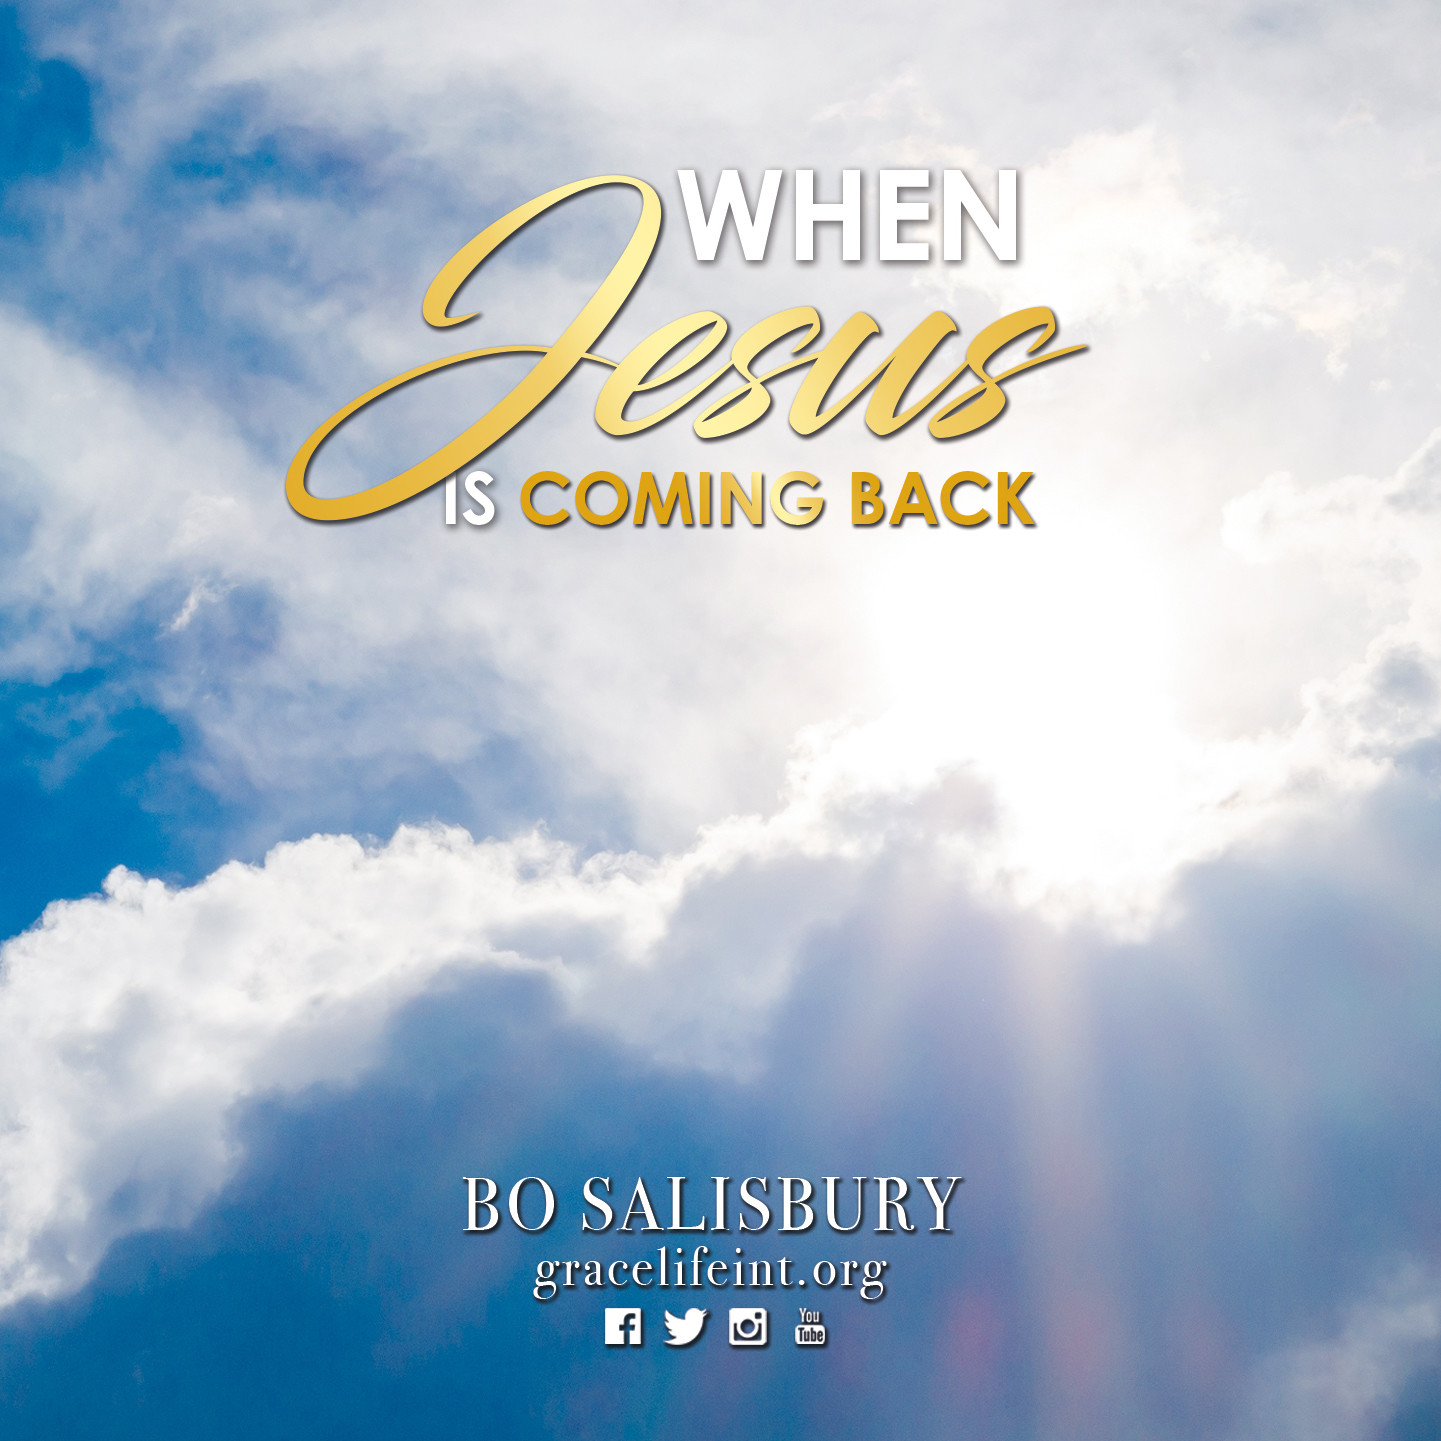 When Jesus is Coming Back